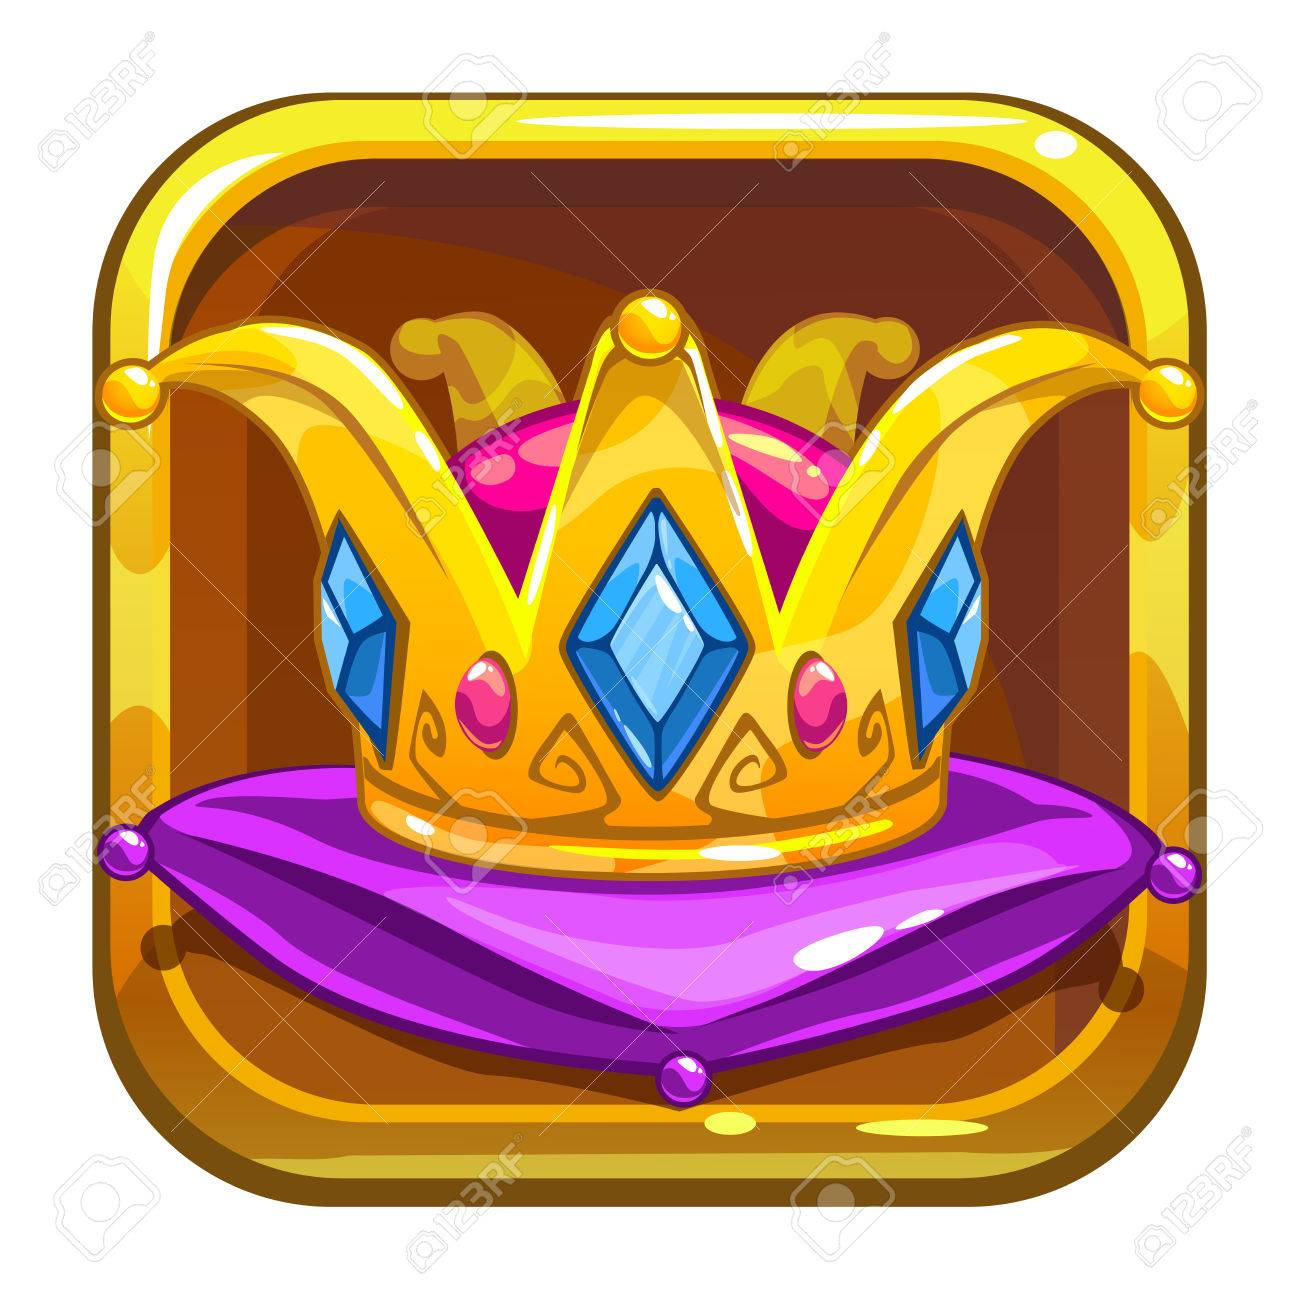 App Store Icon With Golden Crown On The Green Pillow Cartoon Royalty Free Cliparts Vectors And Stock Illustration Image 59276669 Golden yellow emperor prince queen crowns diamond coronation tiara crowning emojis corona isolated. 123rf com